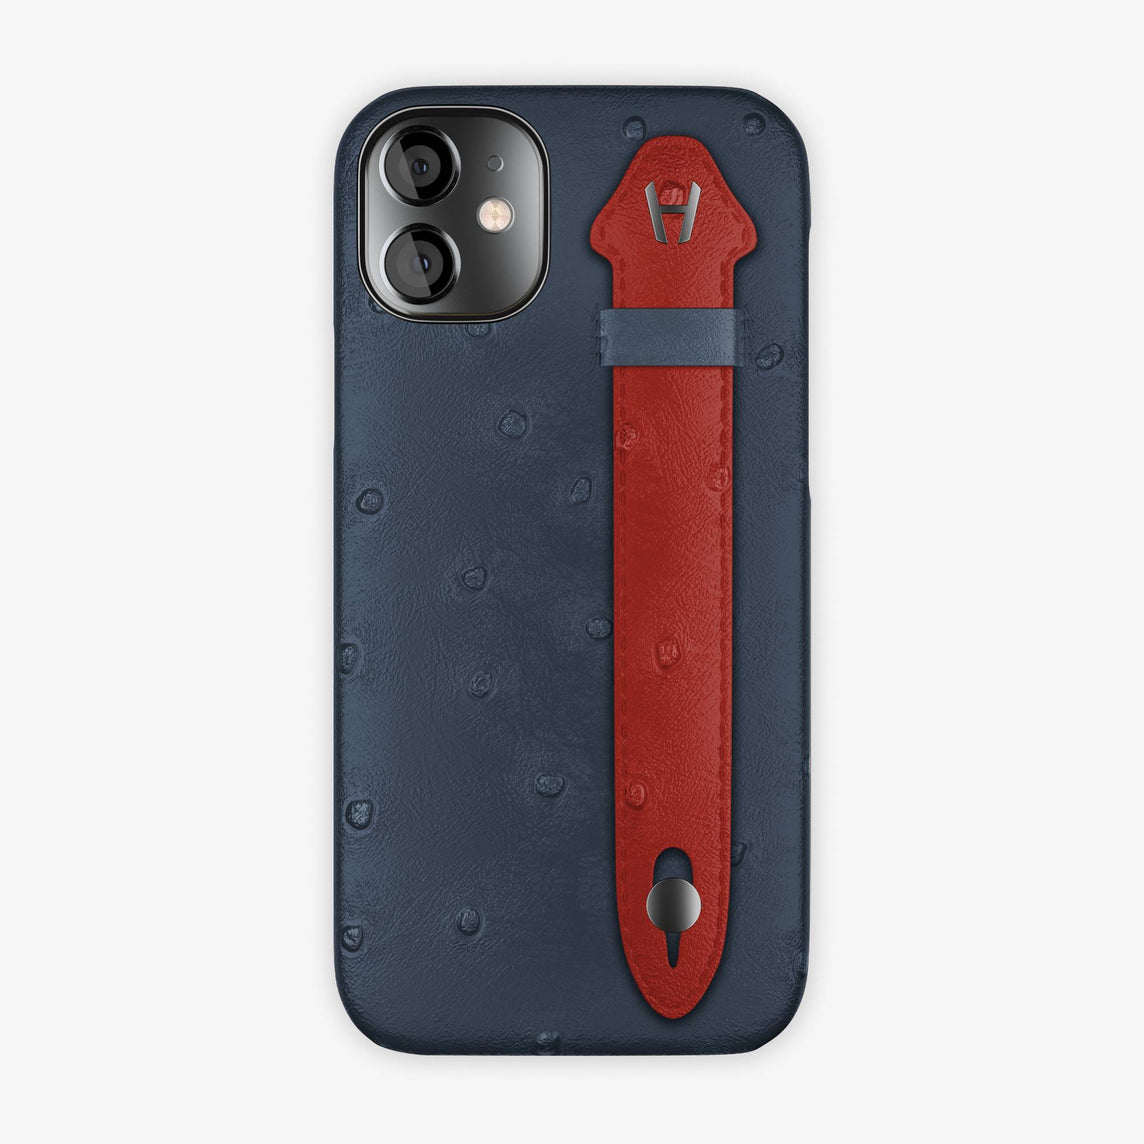 Ostrich Side Finger Case iPhone 12 Mini | Navy Blue/Red - Black